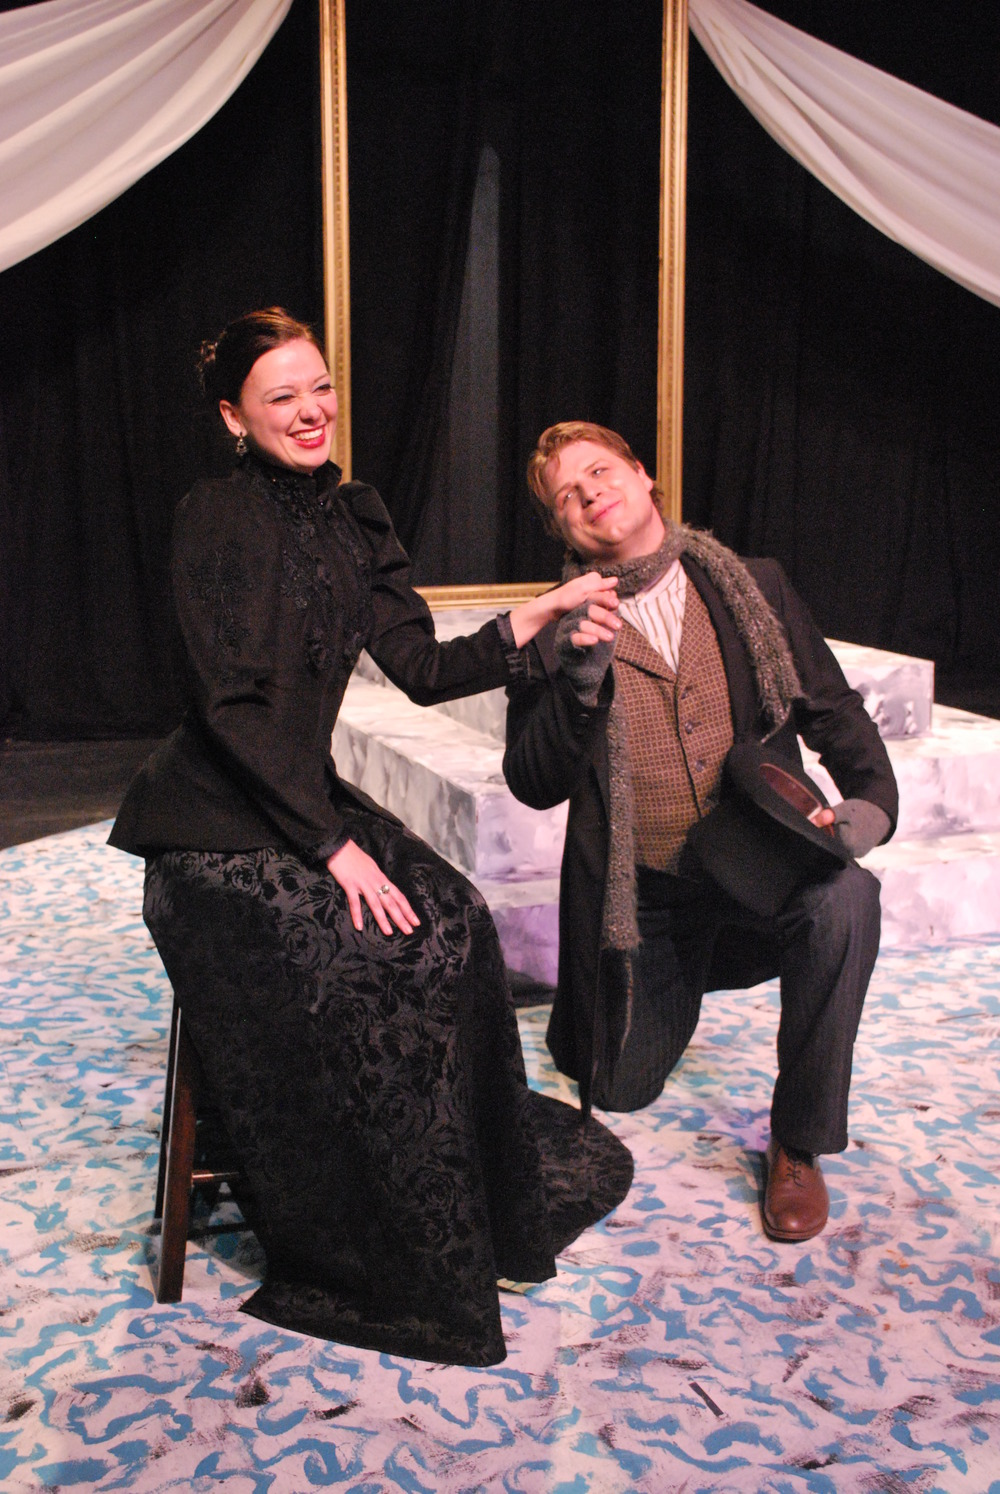 Jennifer Wells and Jeffrey Burleson Twelfth Night 2010